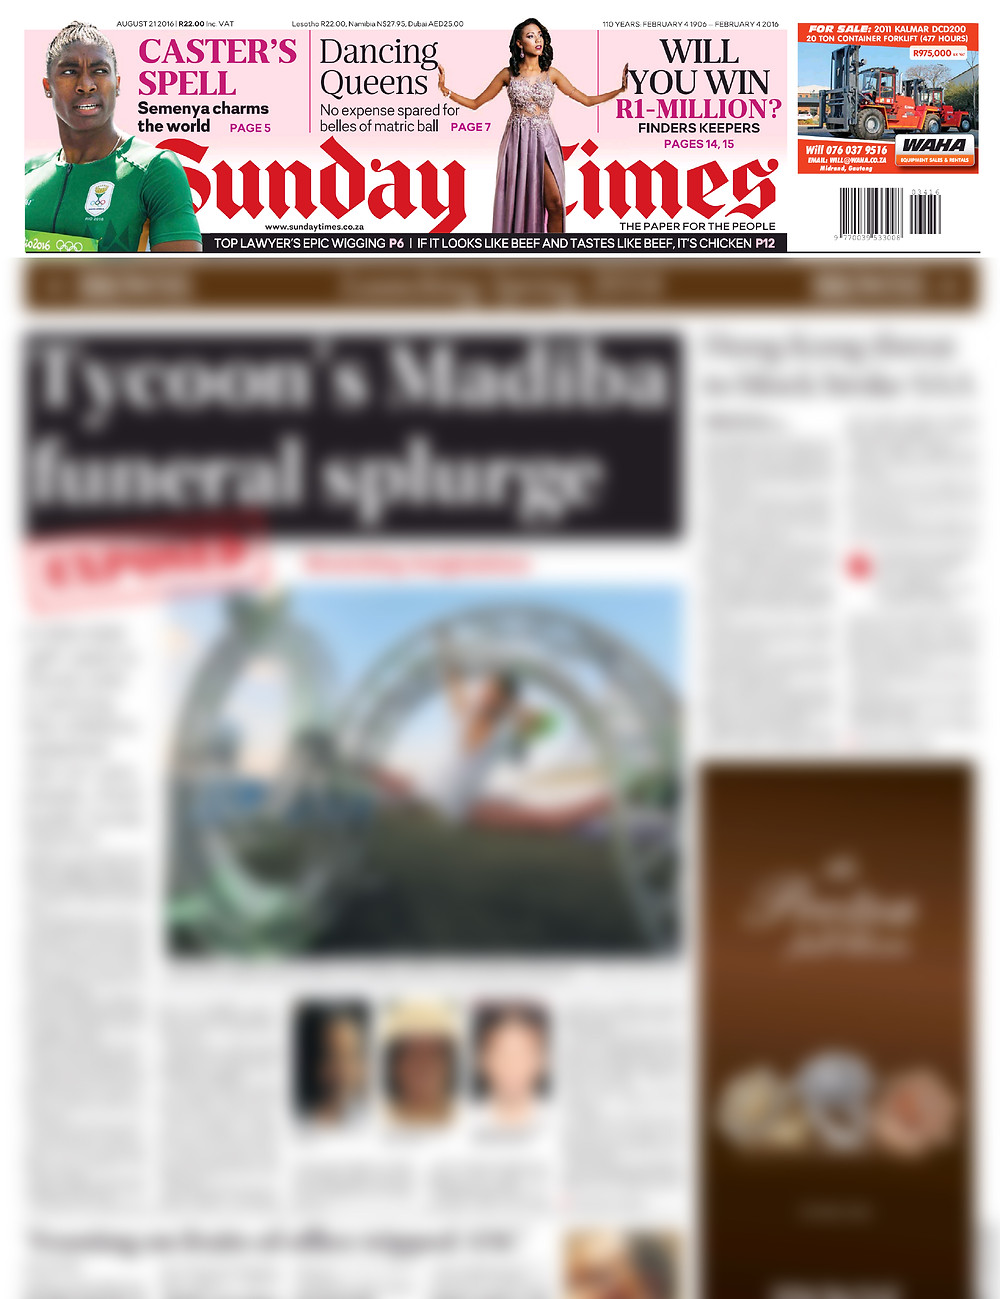 RICH Photography on the front Page of the Sunday Times